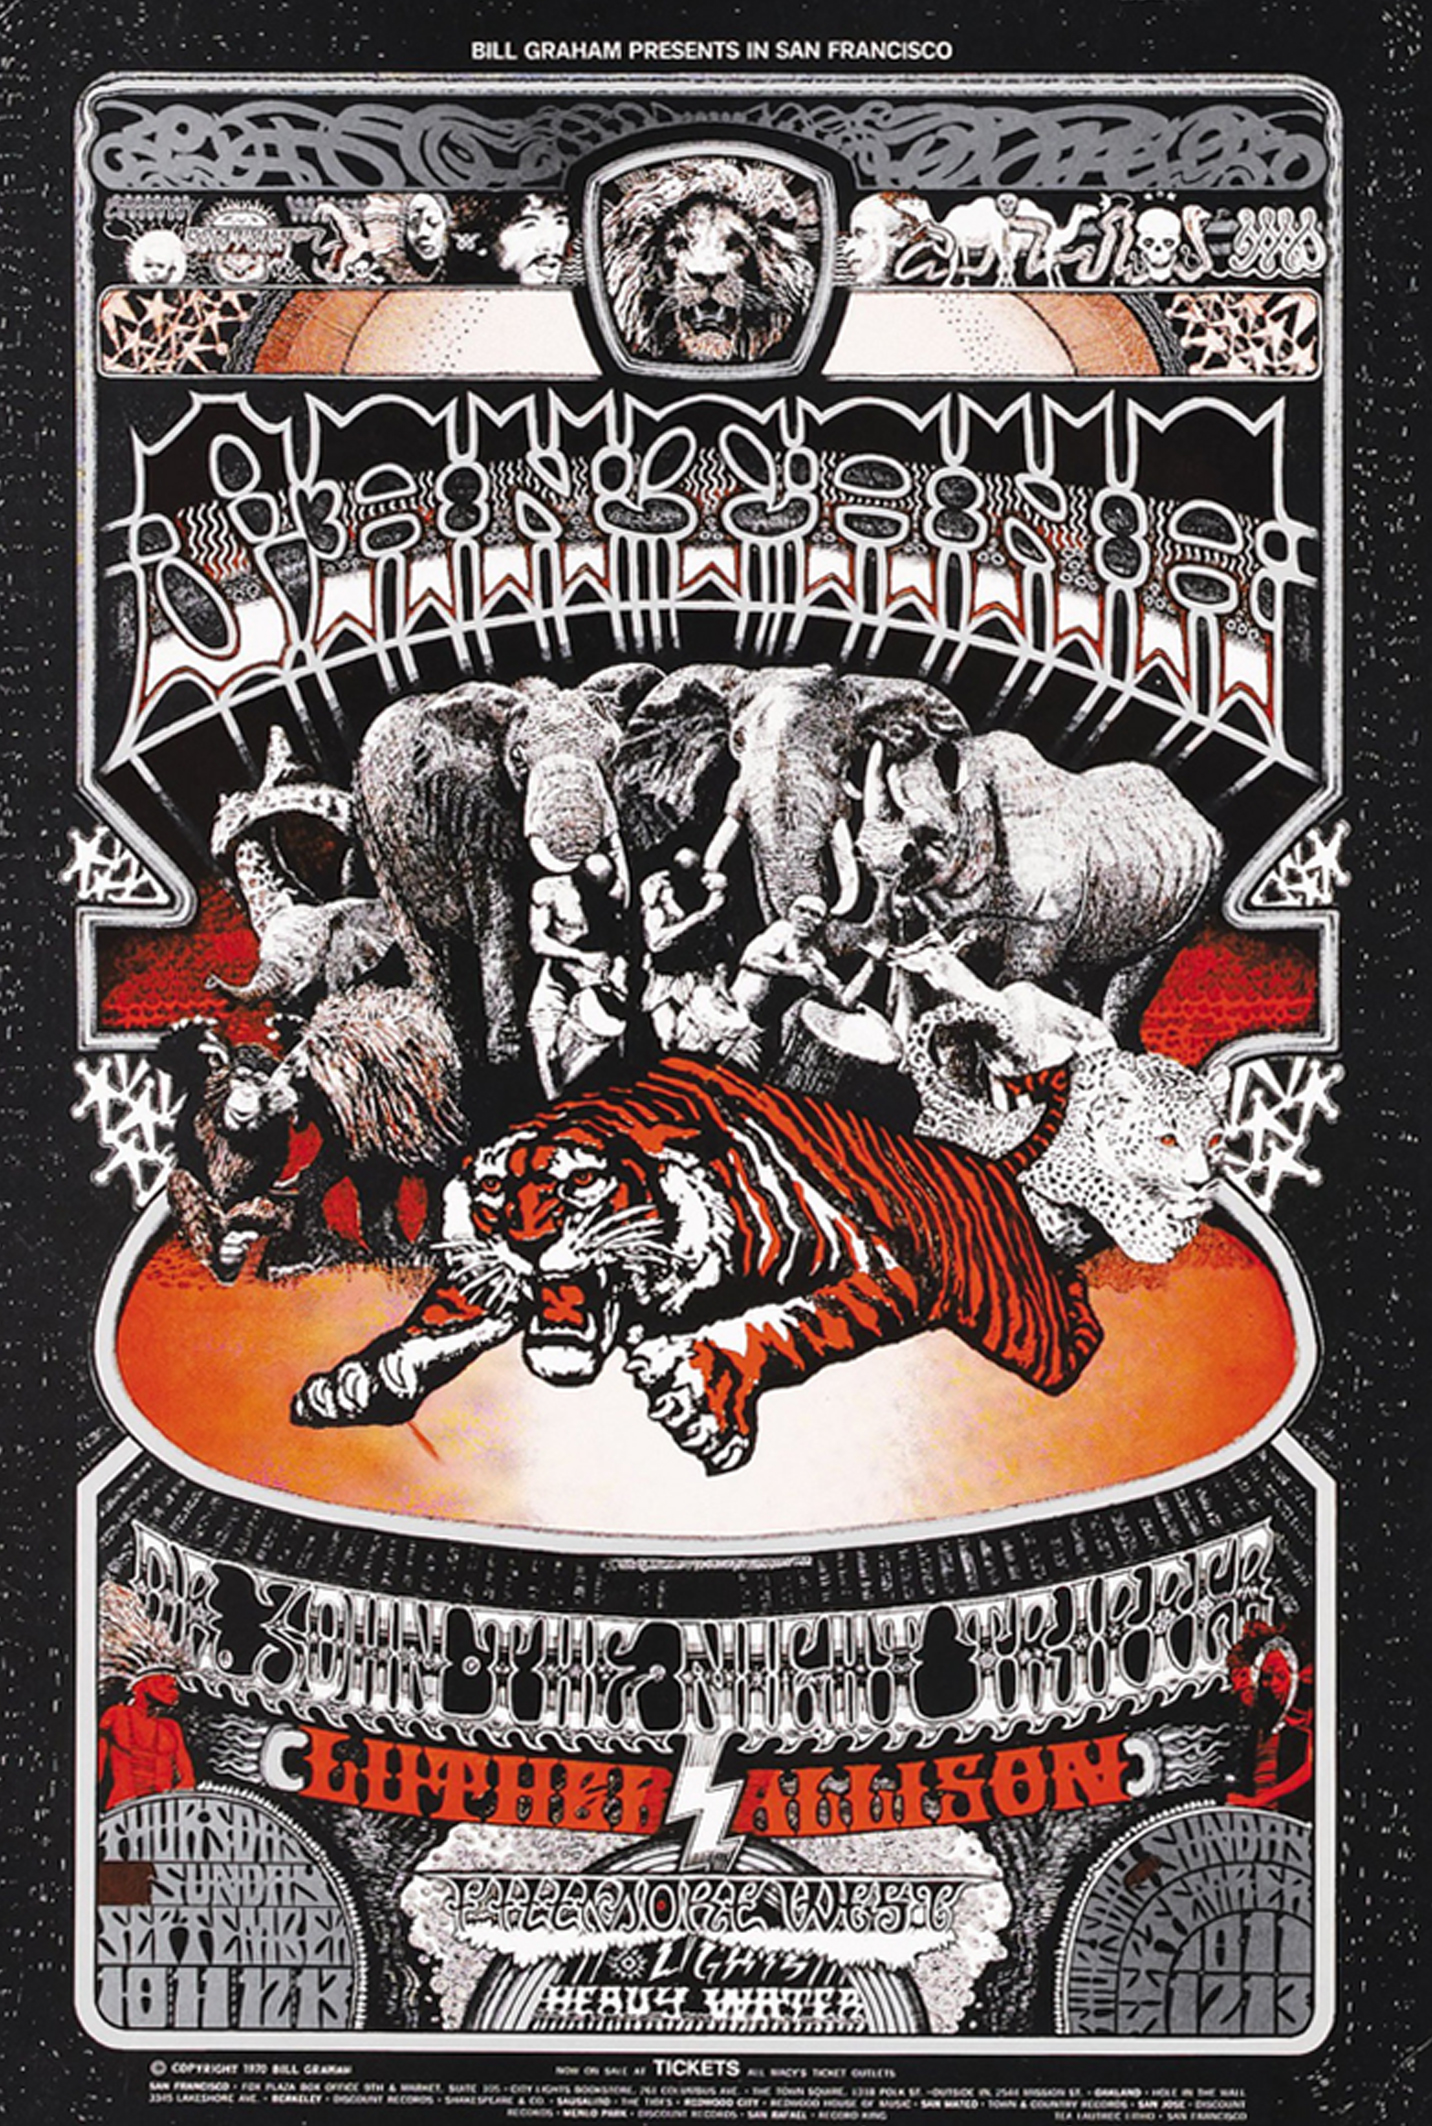 Santana Fillmore West Concert 1970